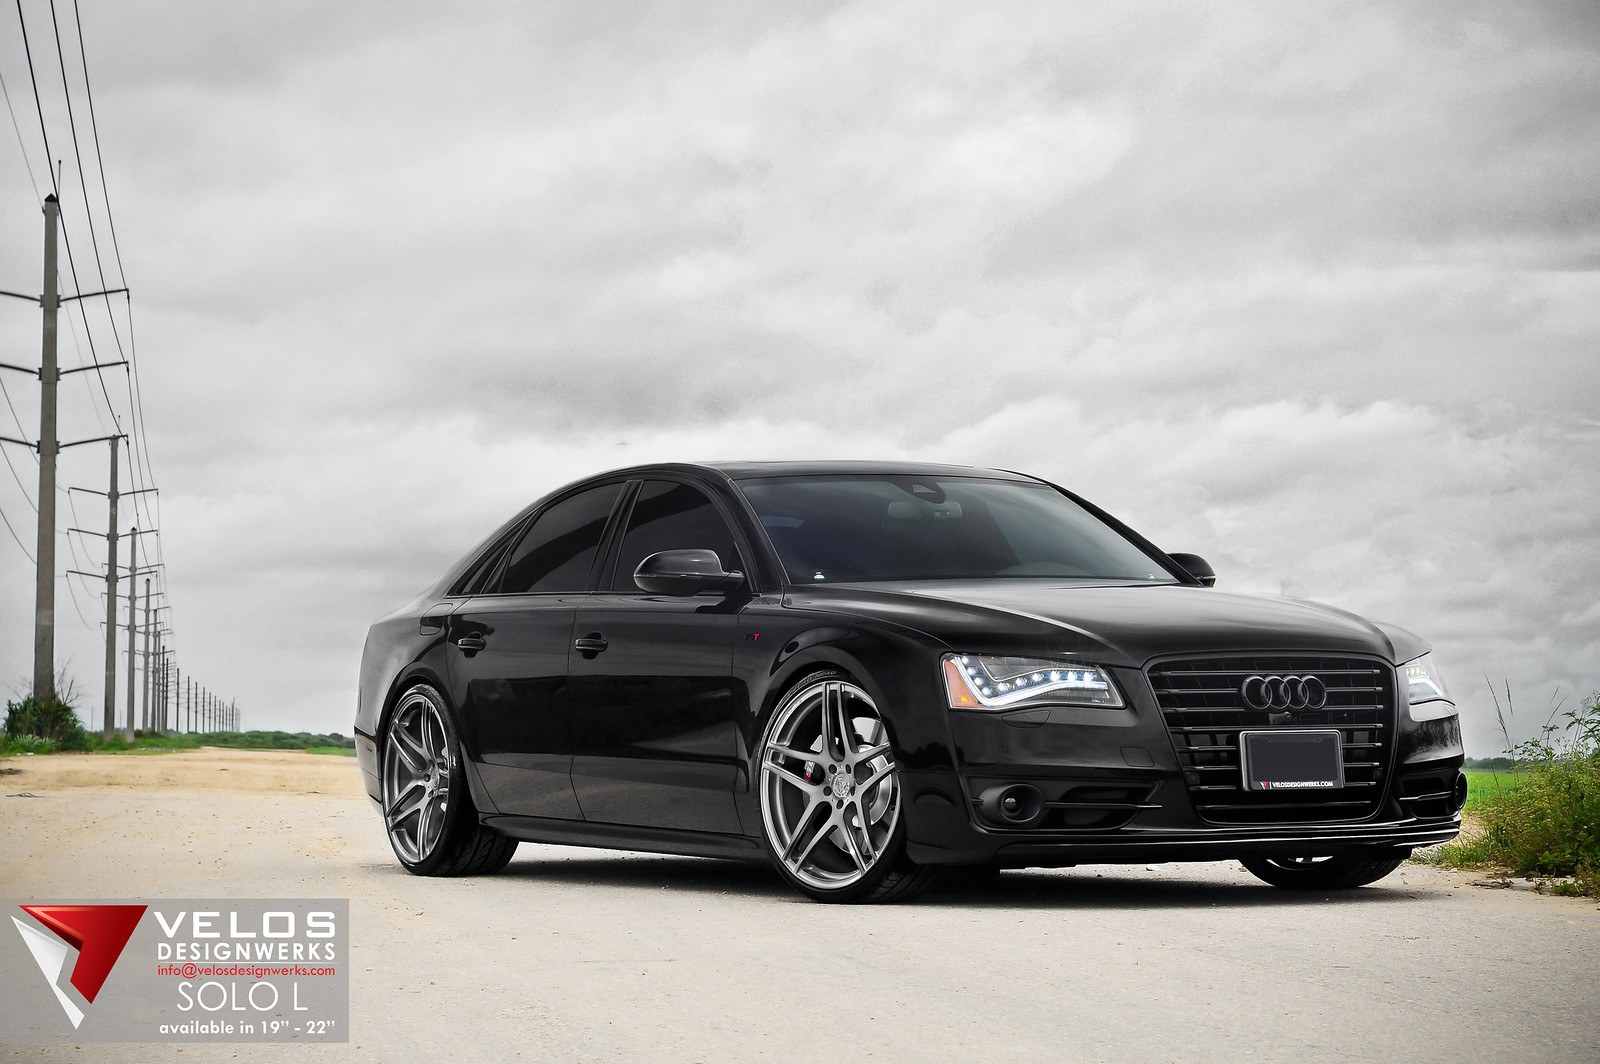 2013 audi s8 velos designwerks solo l wheels full shoot inside. Black Bedroom Furniture Sets. Home Design Ideas